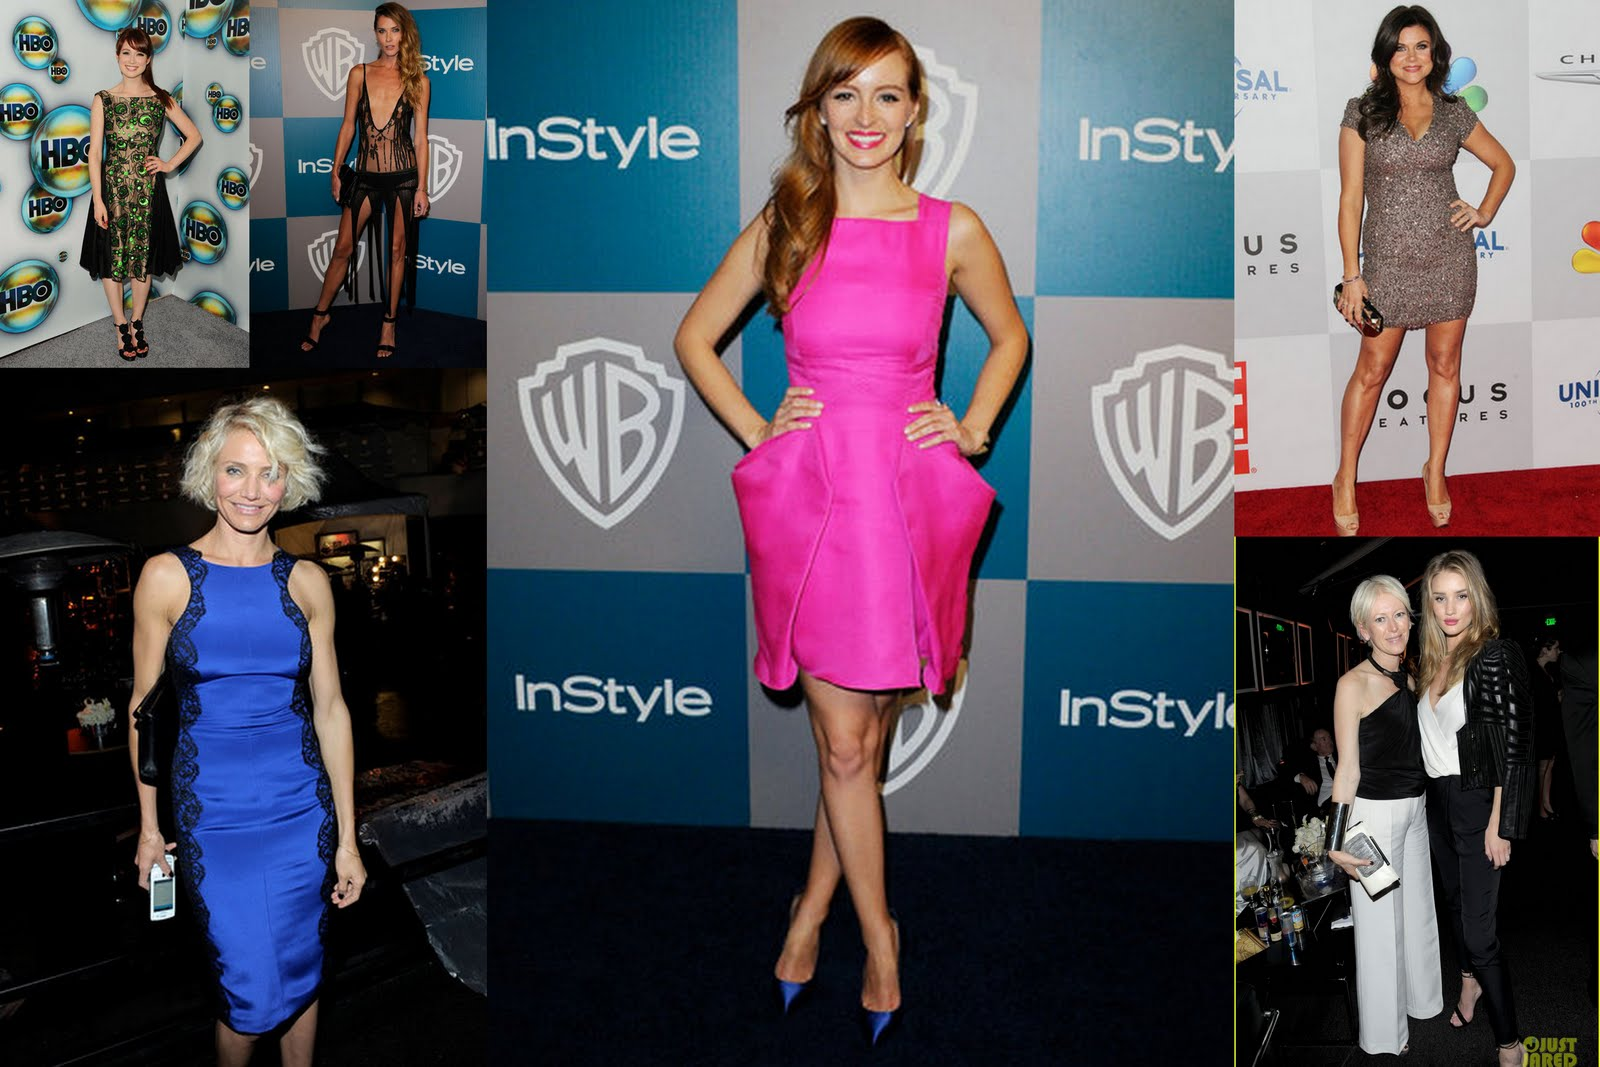 Ellie Kemper Topless http://smittenincle.blogspot.com/2012/01/golden-globes-after-party.html